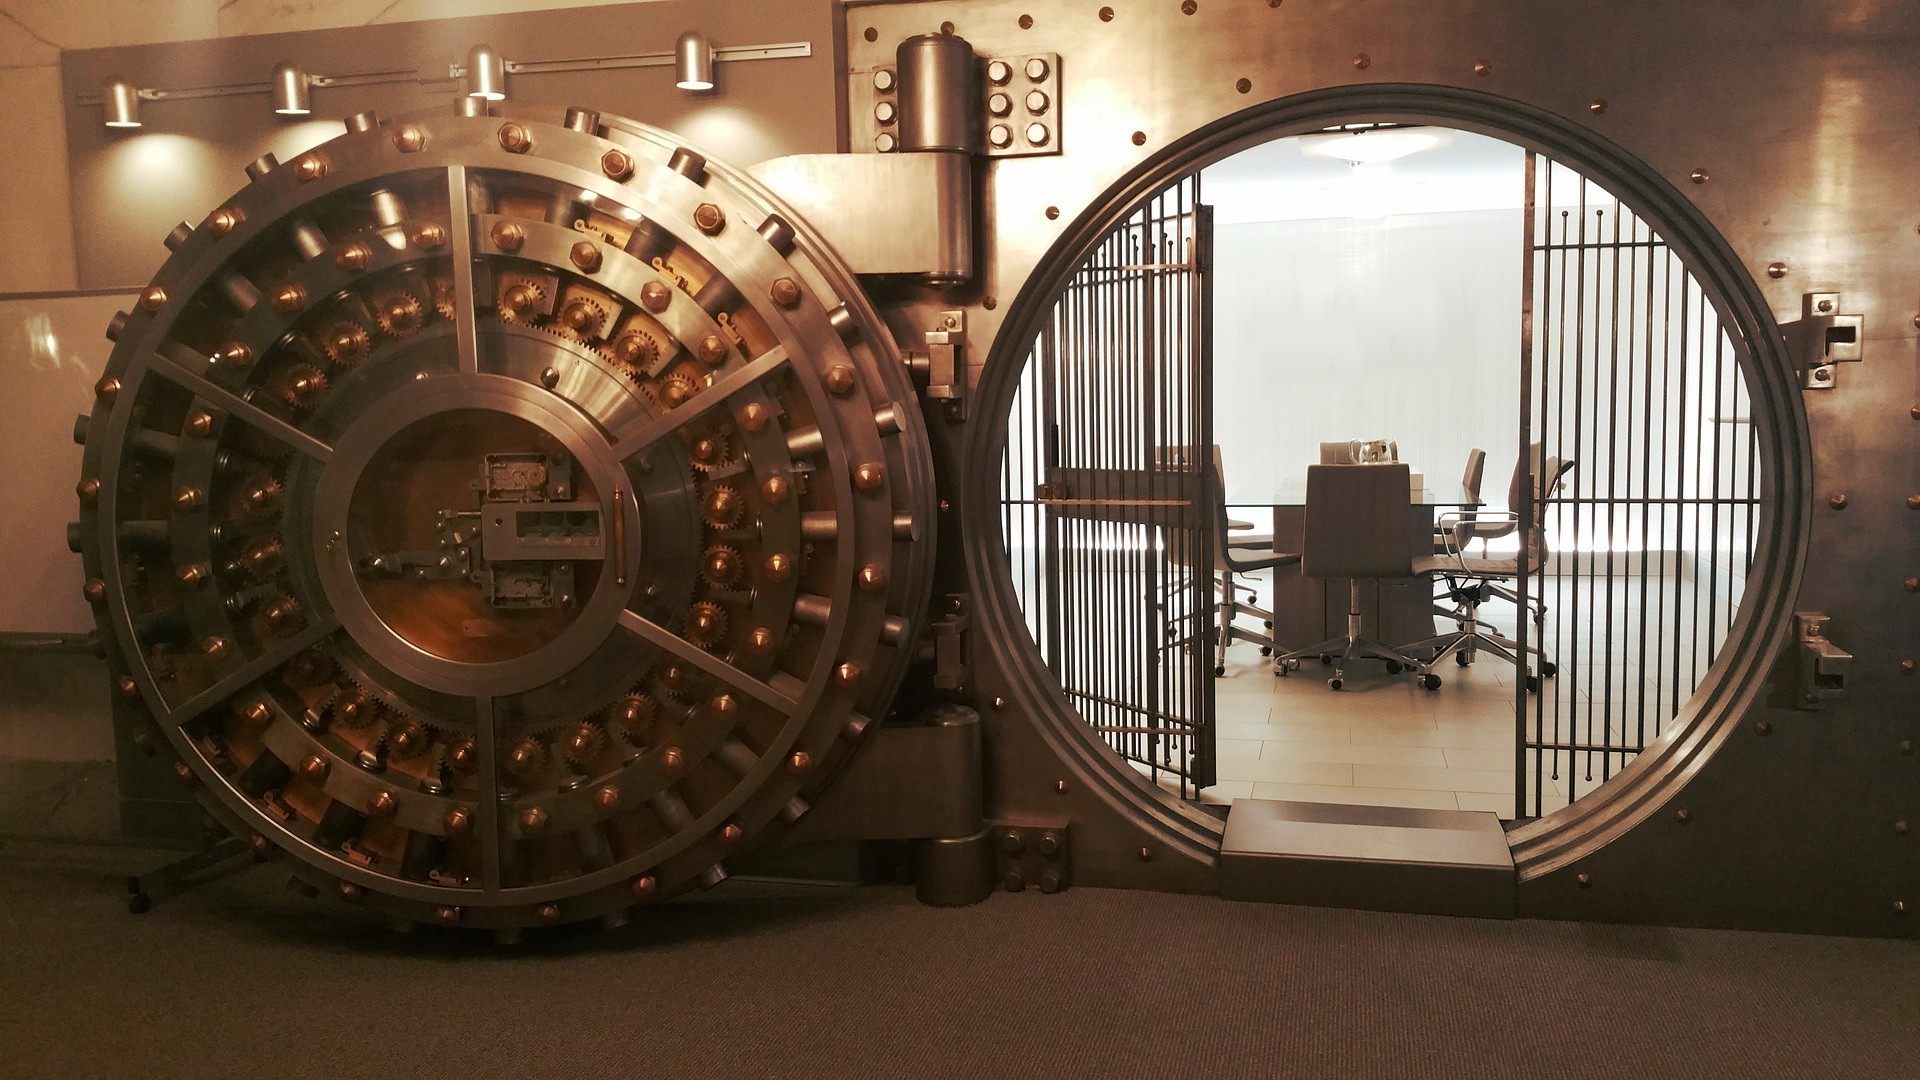 Google Drive seems like the perfect vault to store your WordPress backups in.